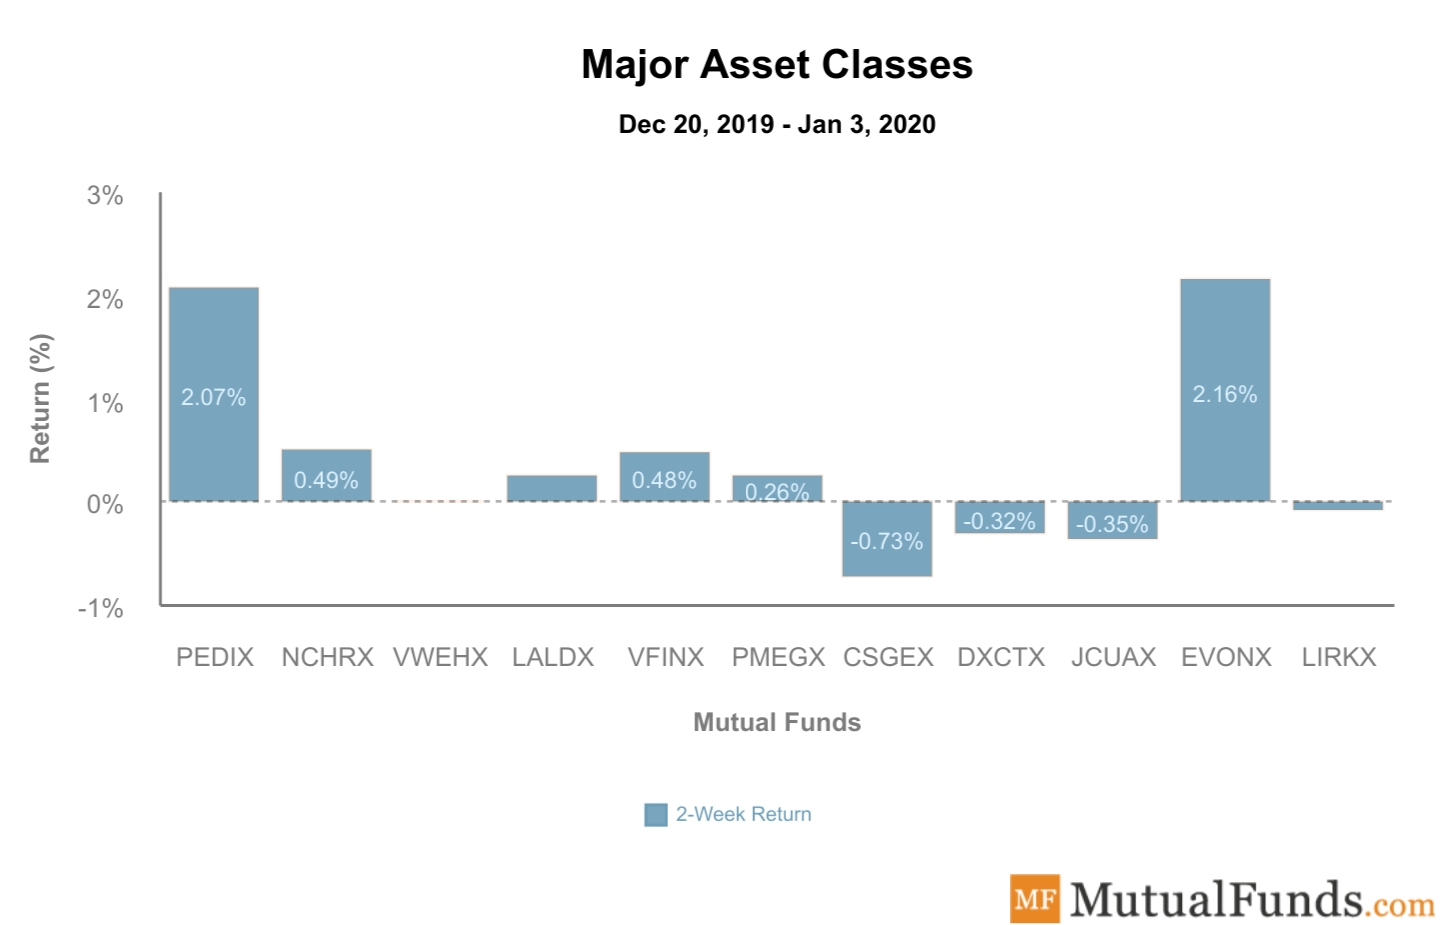 Major Asset Classes Performance Jan 7, 2020